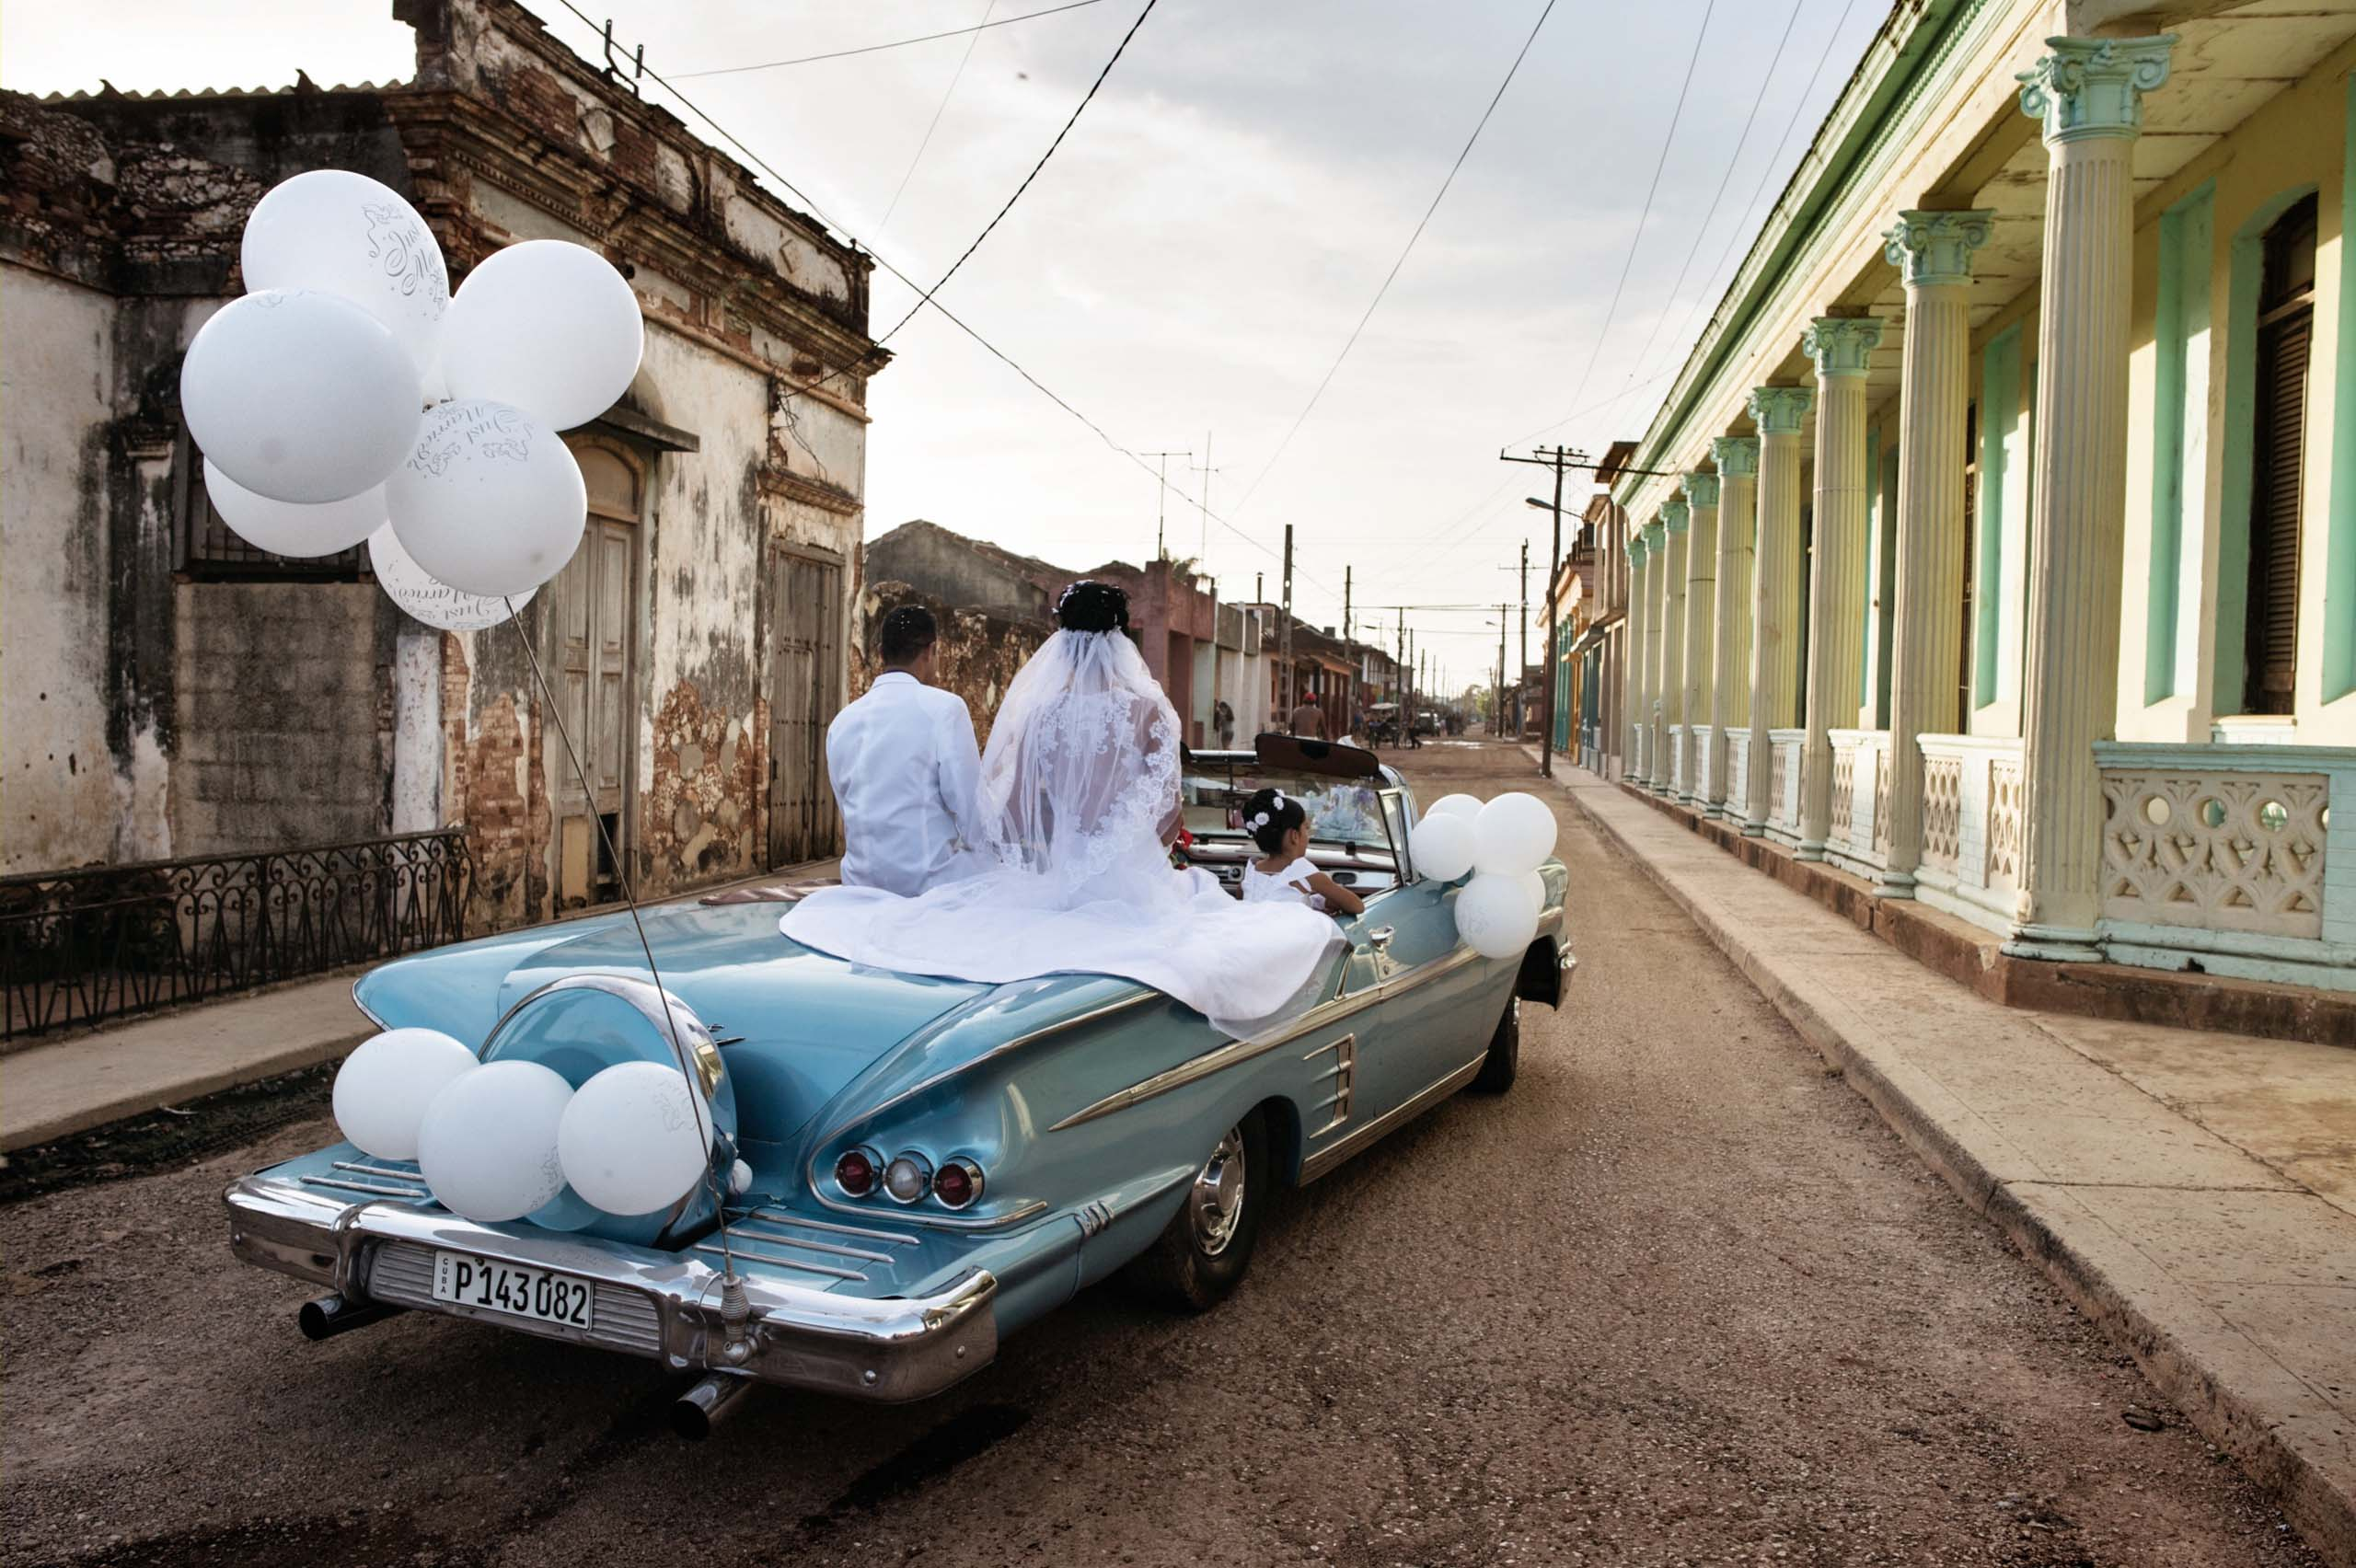 January 2015. Newlyweds ride in a vintage American car through the streets of Guira de Melena. In this prosperous area outside Havana, weddings can cost as much as $20,000.